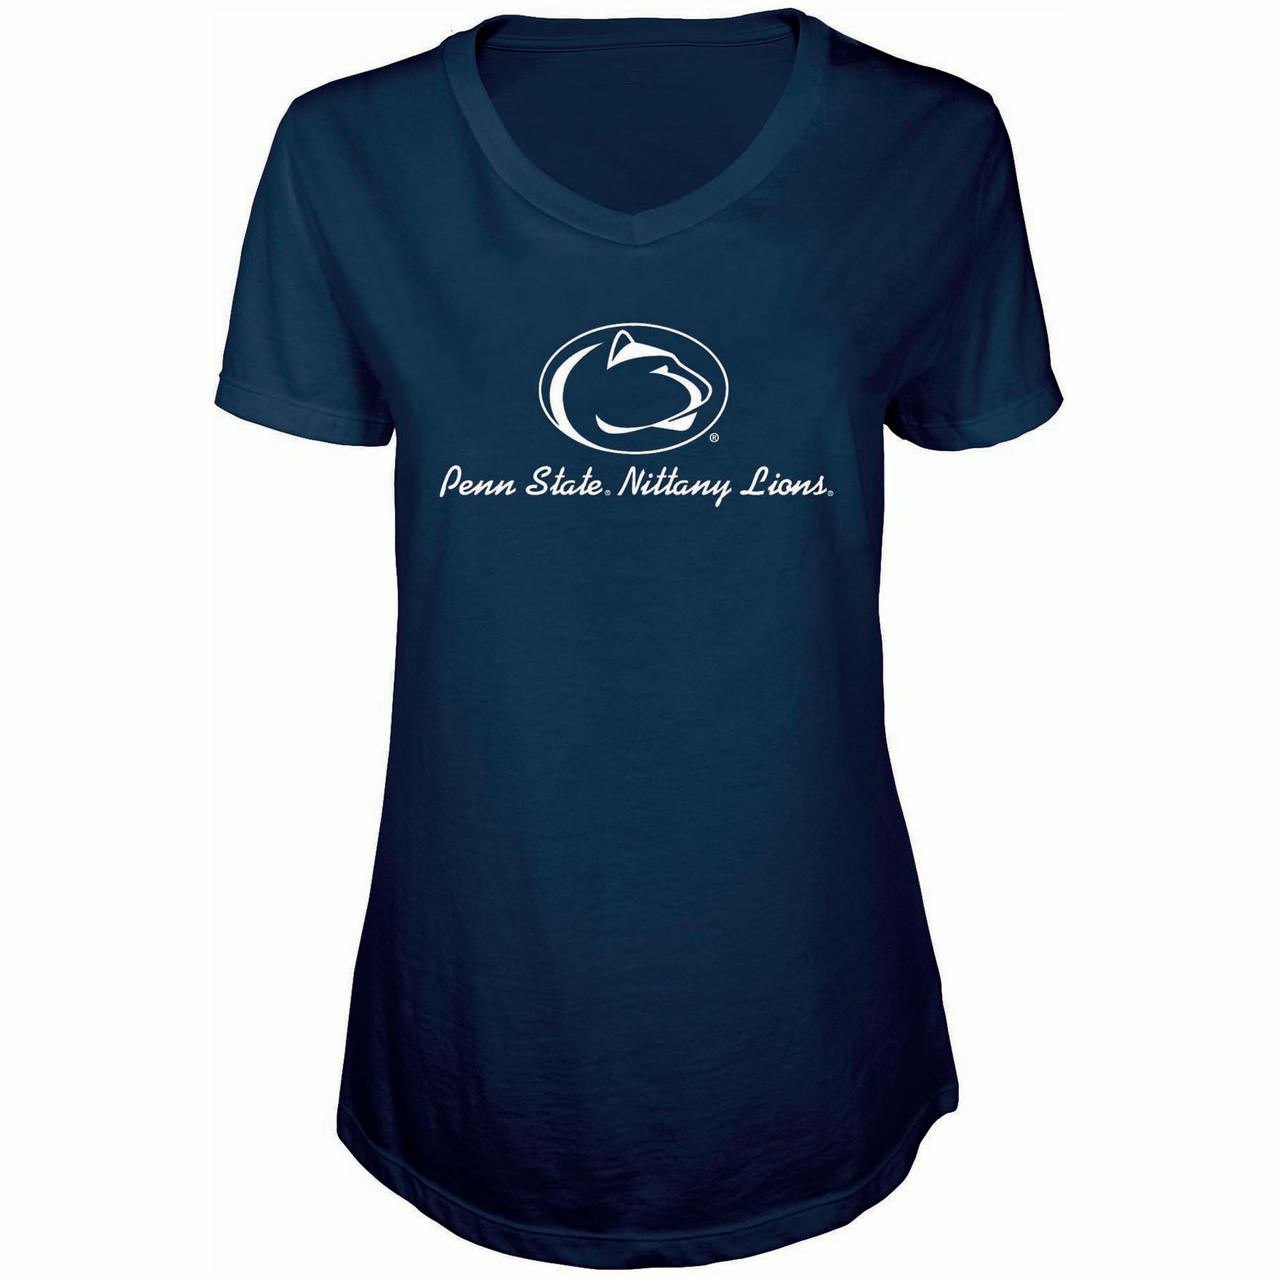 Women's Russell Navy Penn State Nittany Lions State V-Neck T-Shirt